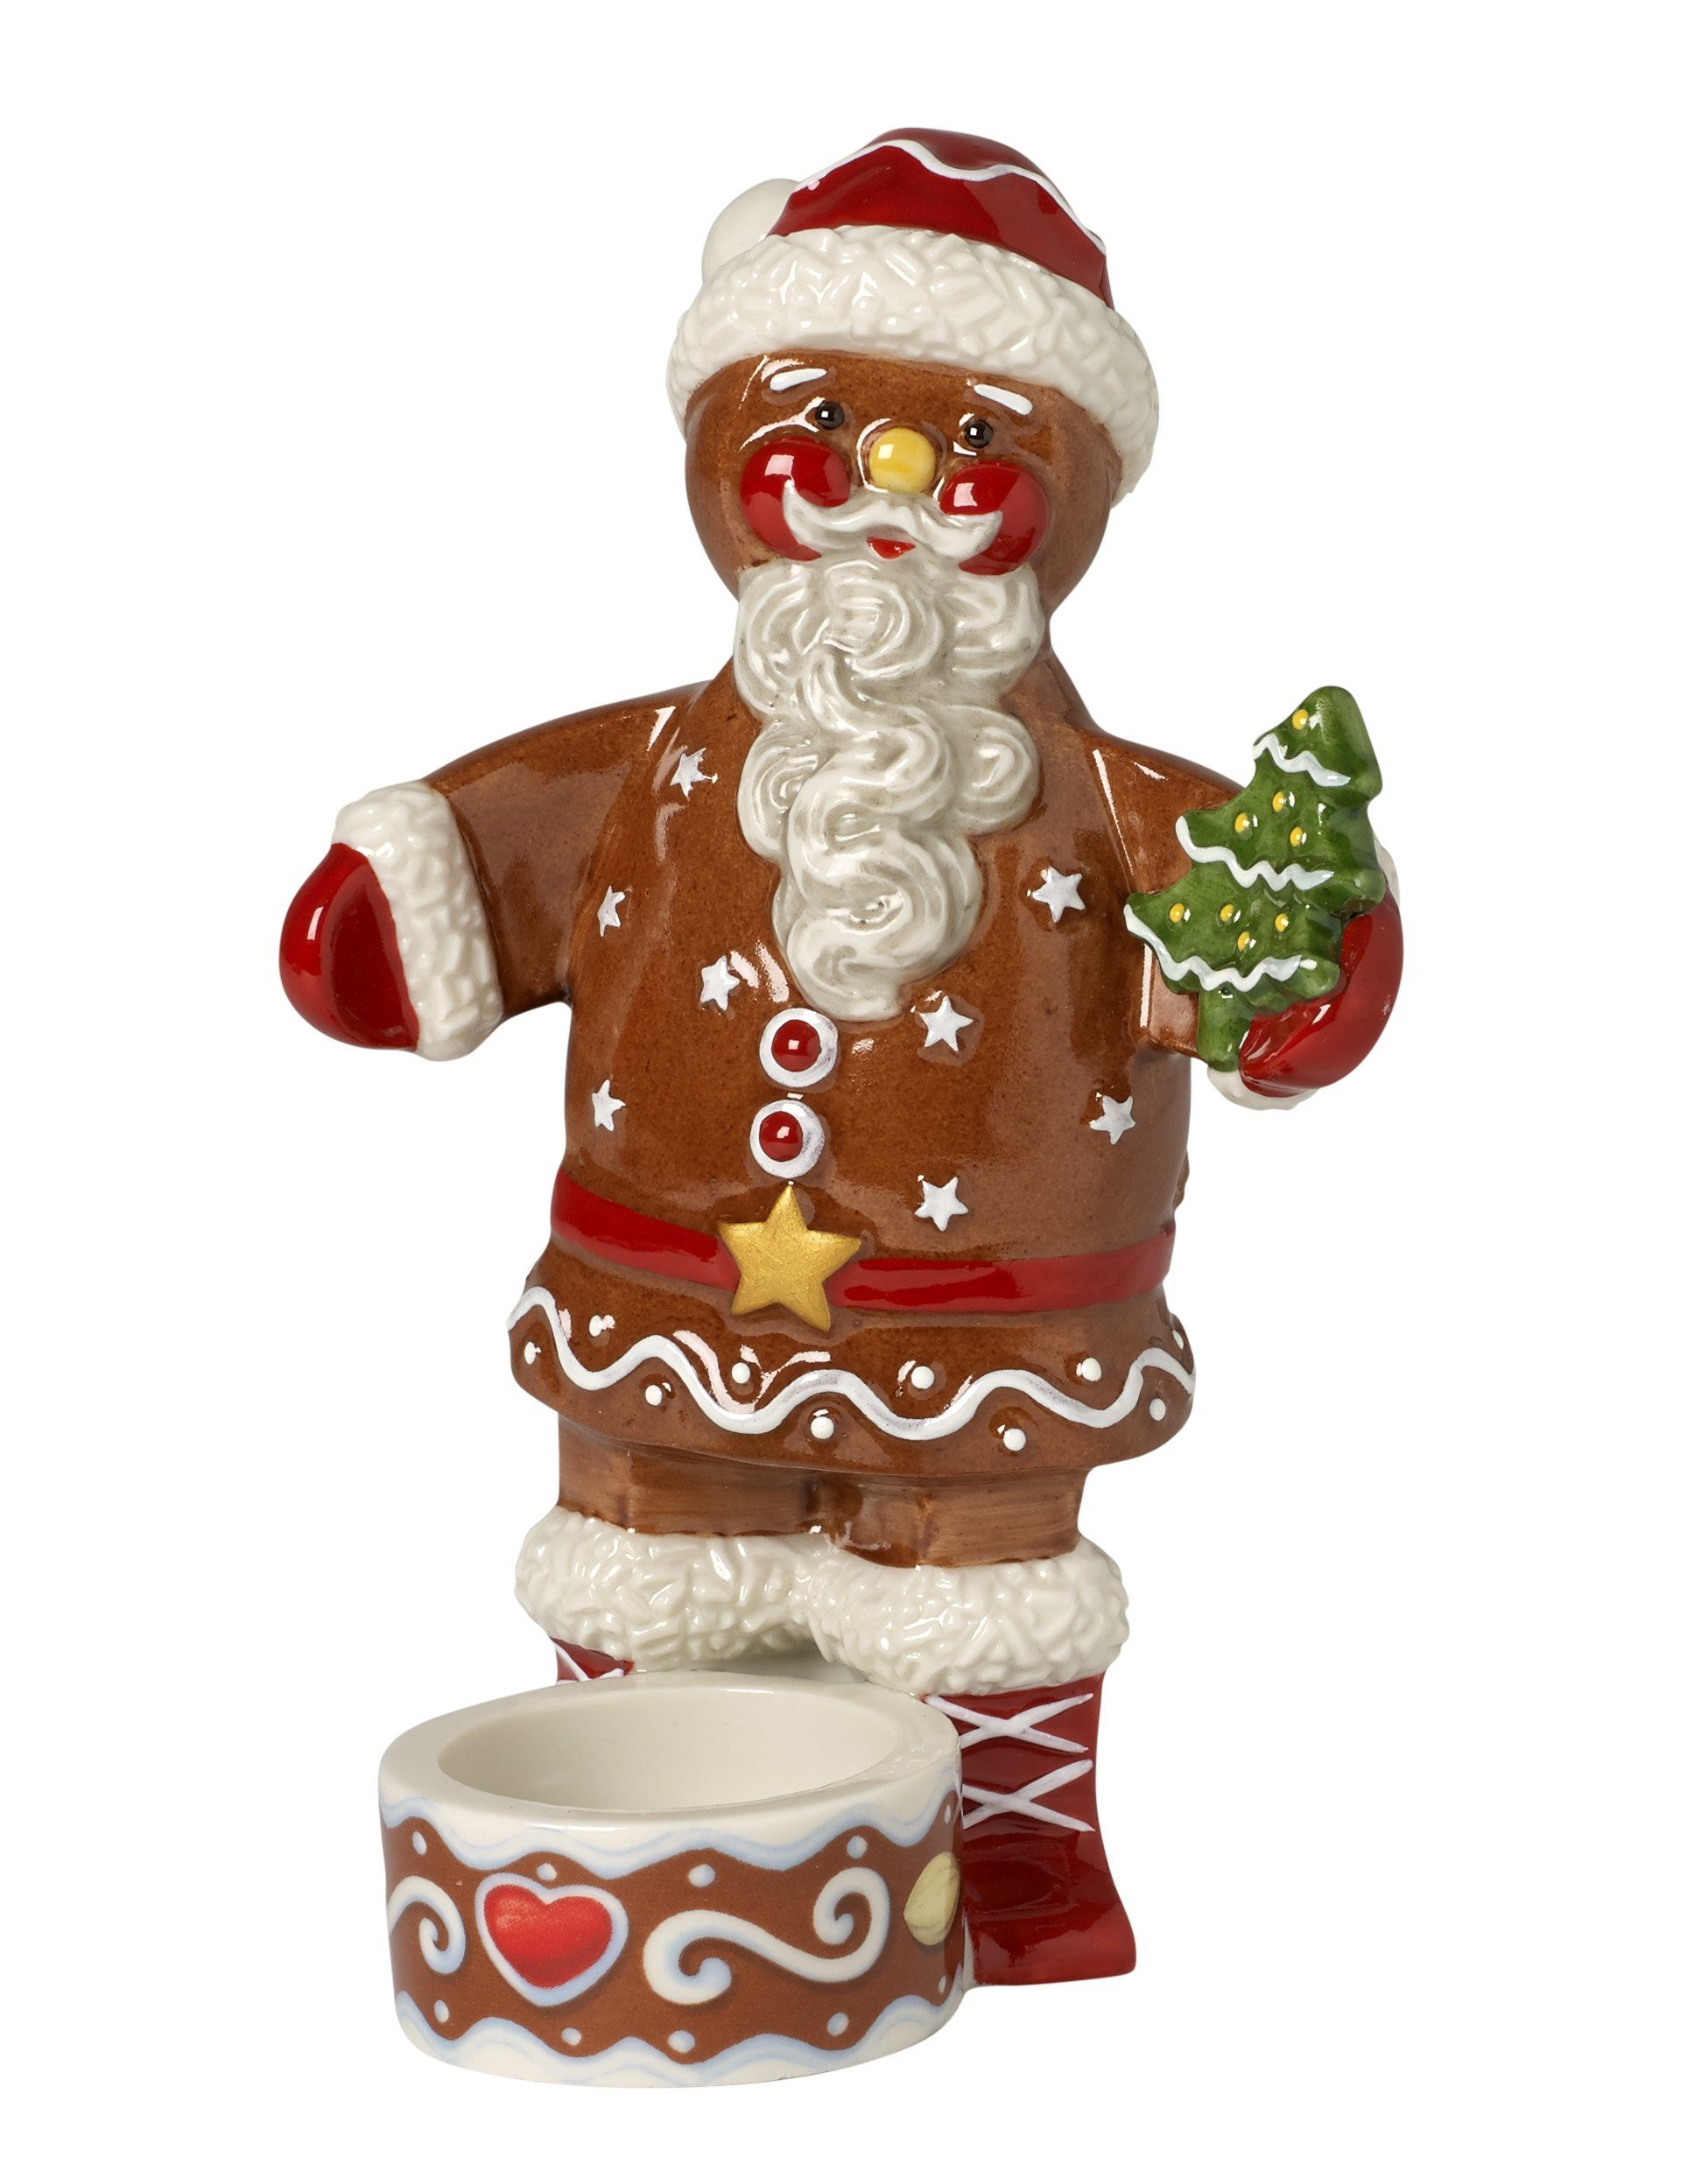 Villeroy & Boch Teelichthalter Santa »Winter Bakery Decoration«